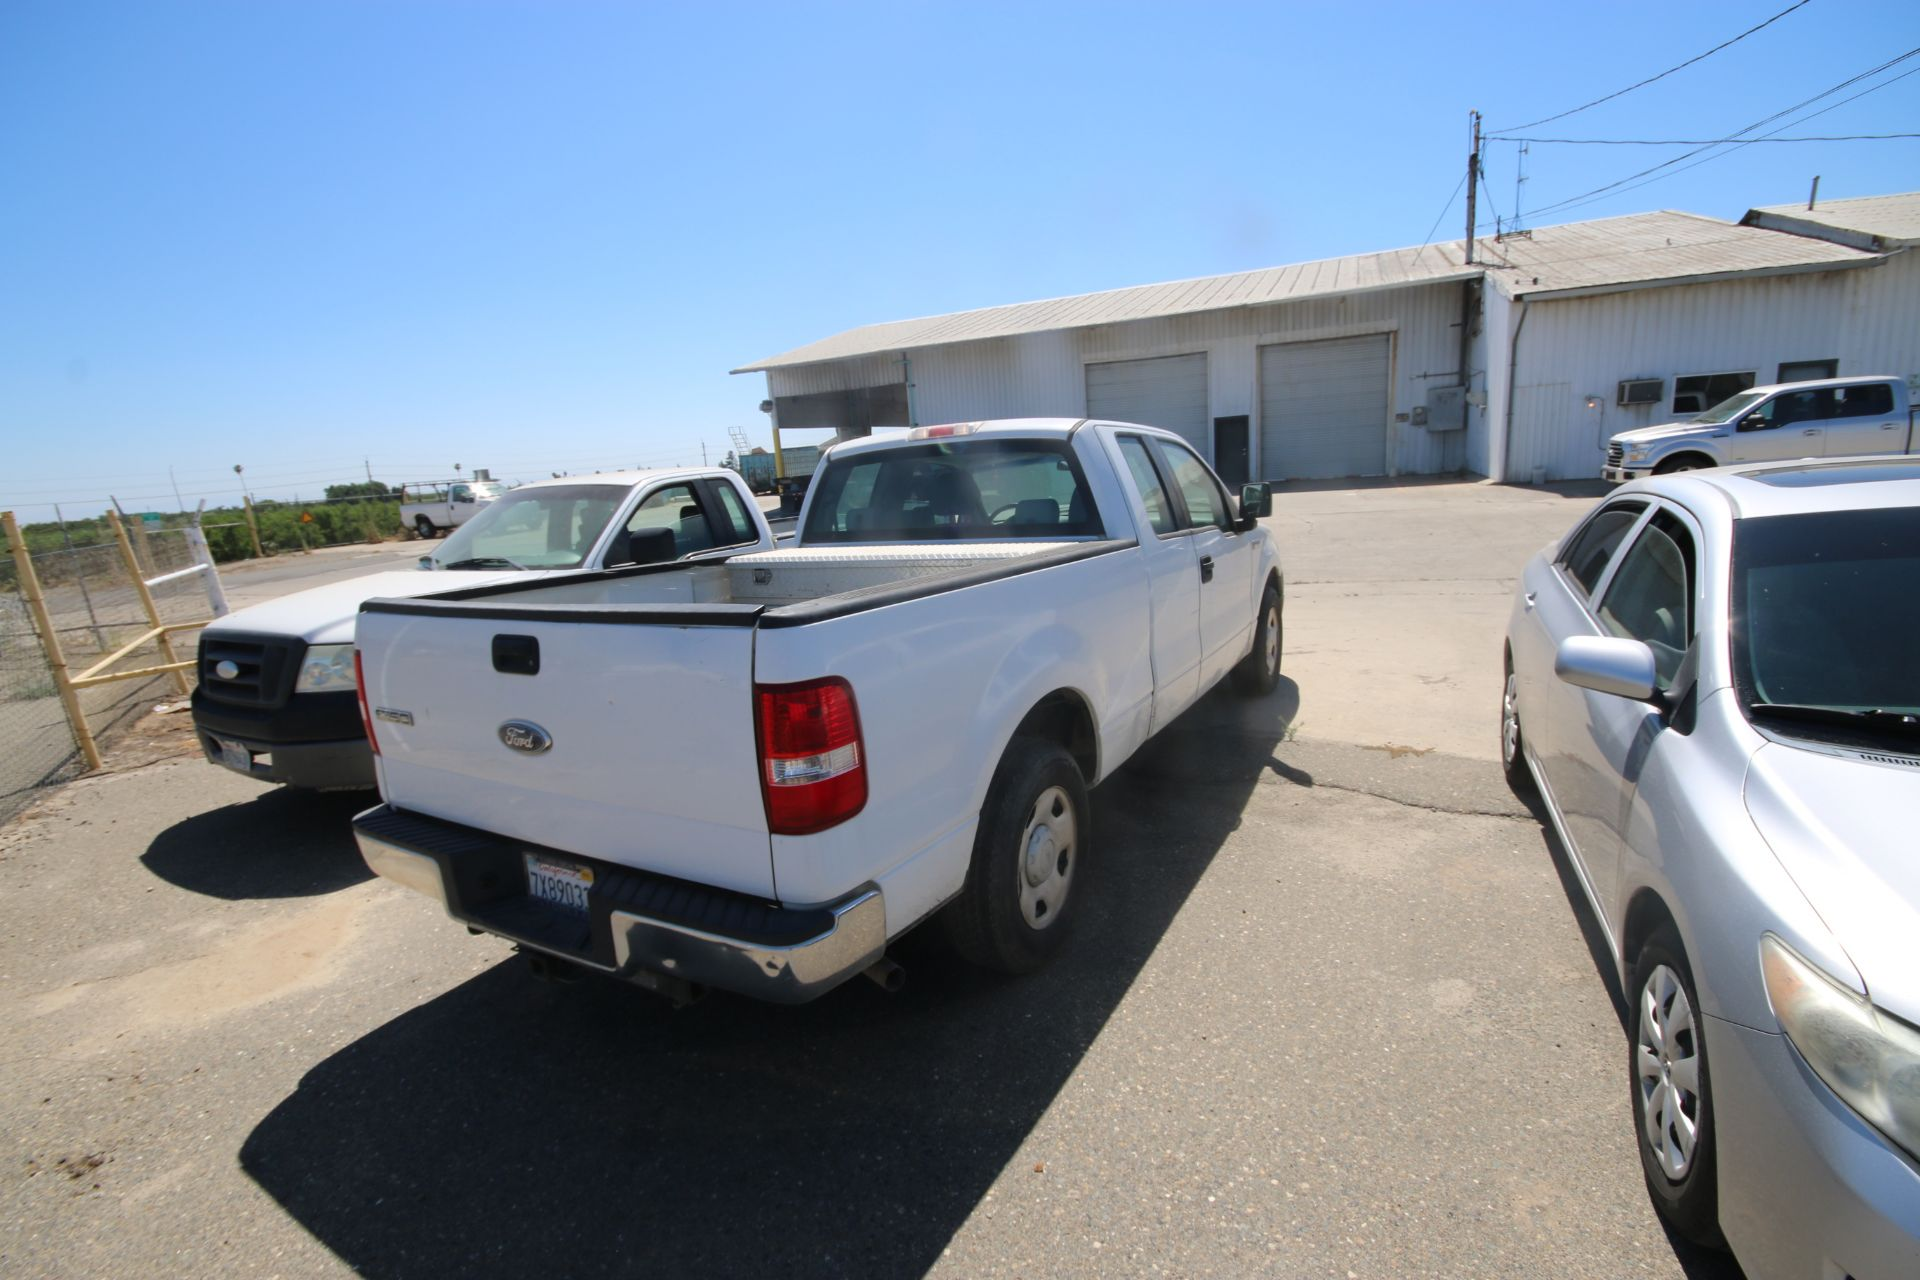 2006 Ford F150 S/C Pick Up Truck, VIN #: 1FTRX12W46FA38458, with 233,106 Miles, Started Up as of - Image 3 of 21